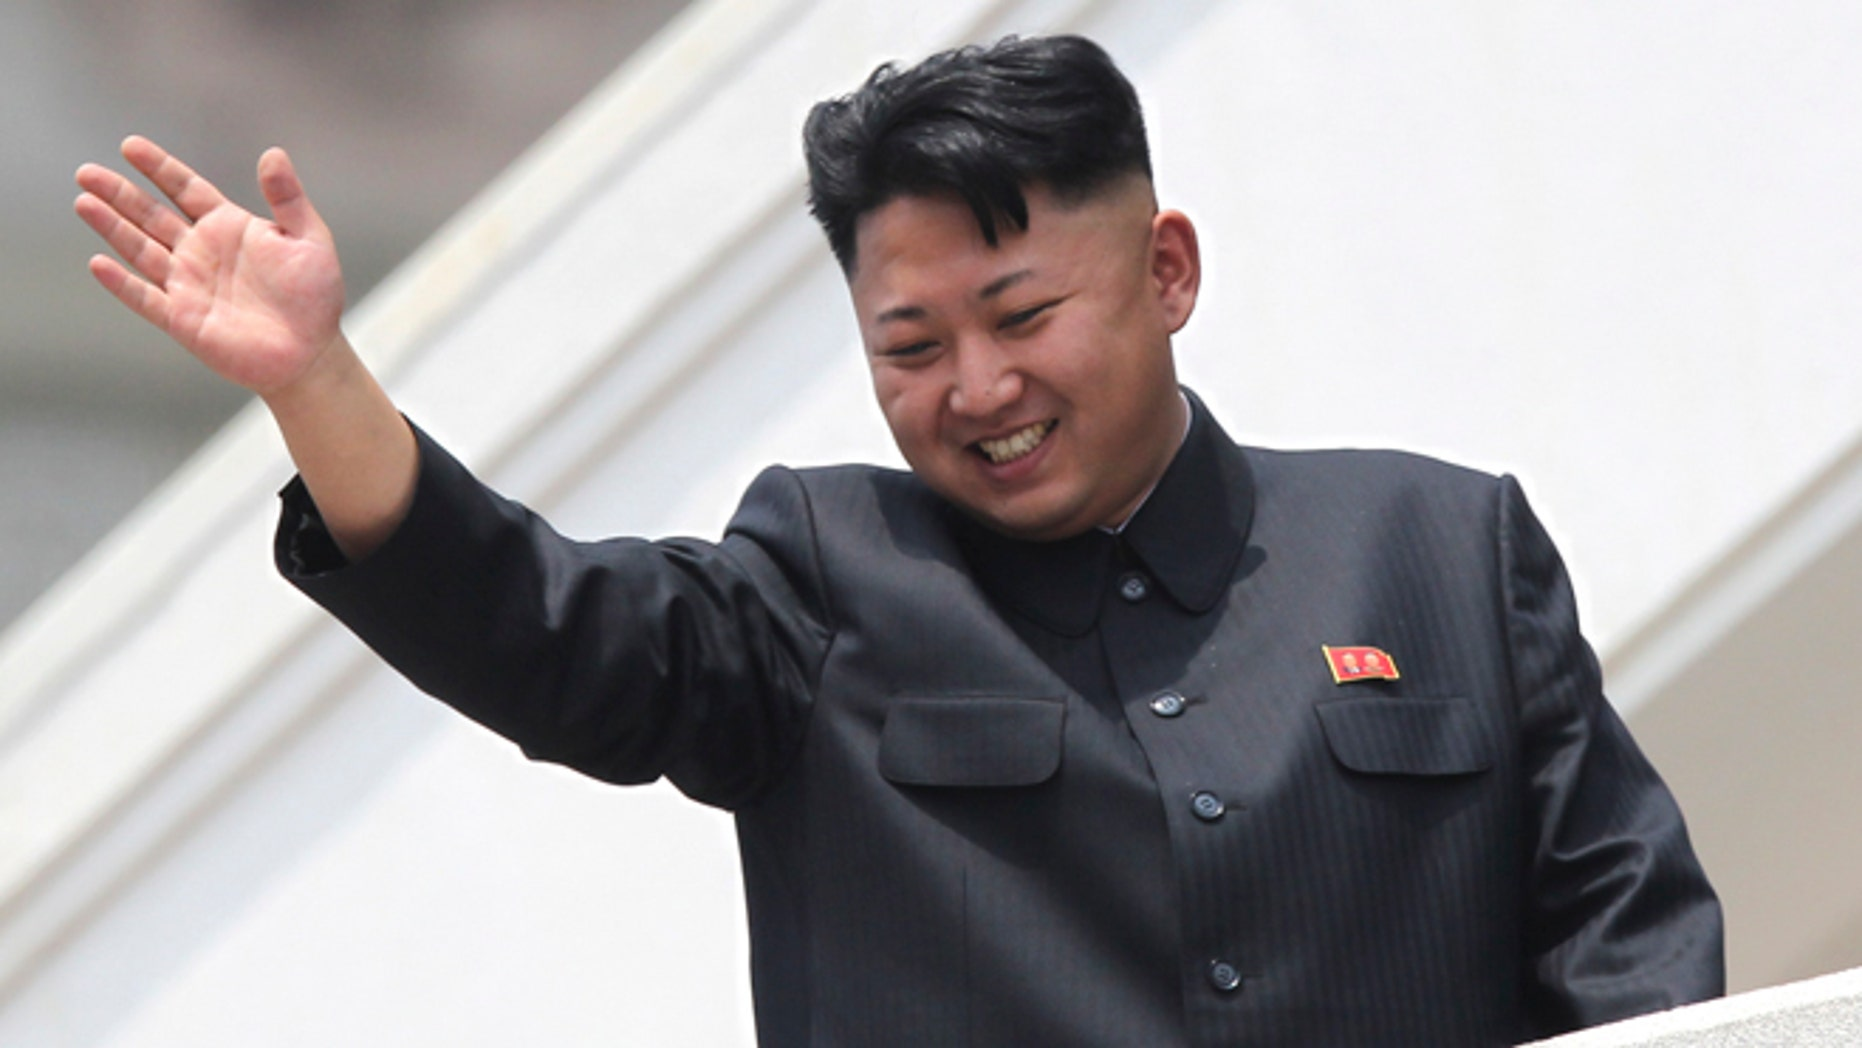 July 2013: North Korean leader Kim Jong Un waves to war veterans during a mass military parade celebrating the 60th anniversary of the Korean War armistice in Pyongyang.